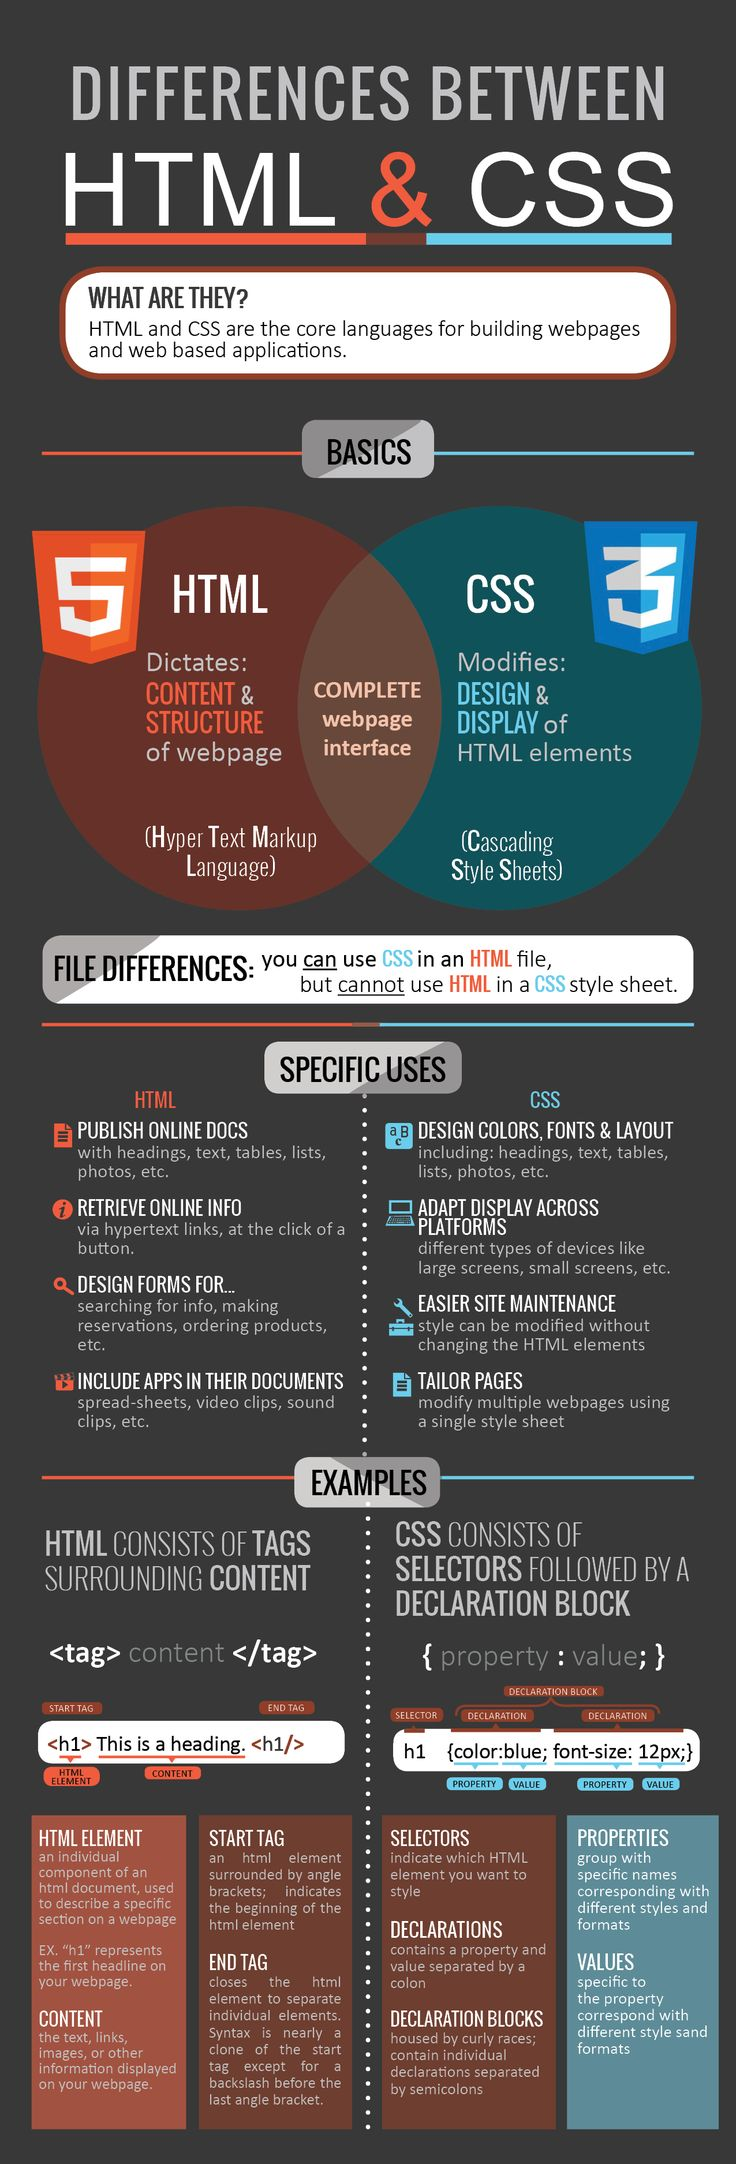 Key differences between #HTML & #CSS